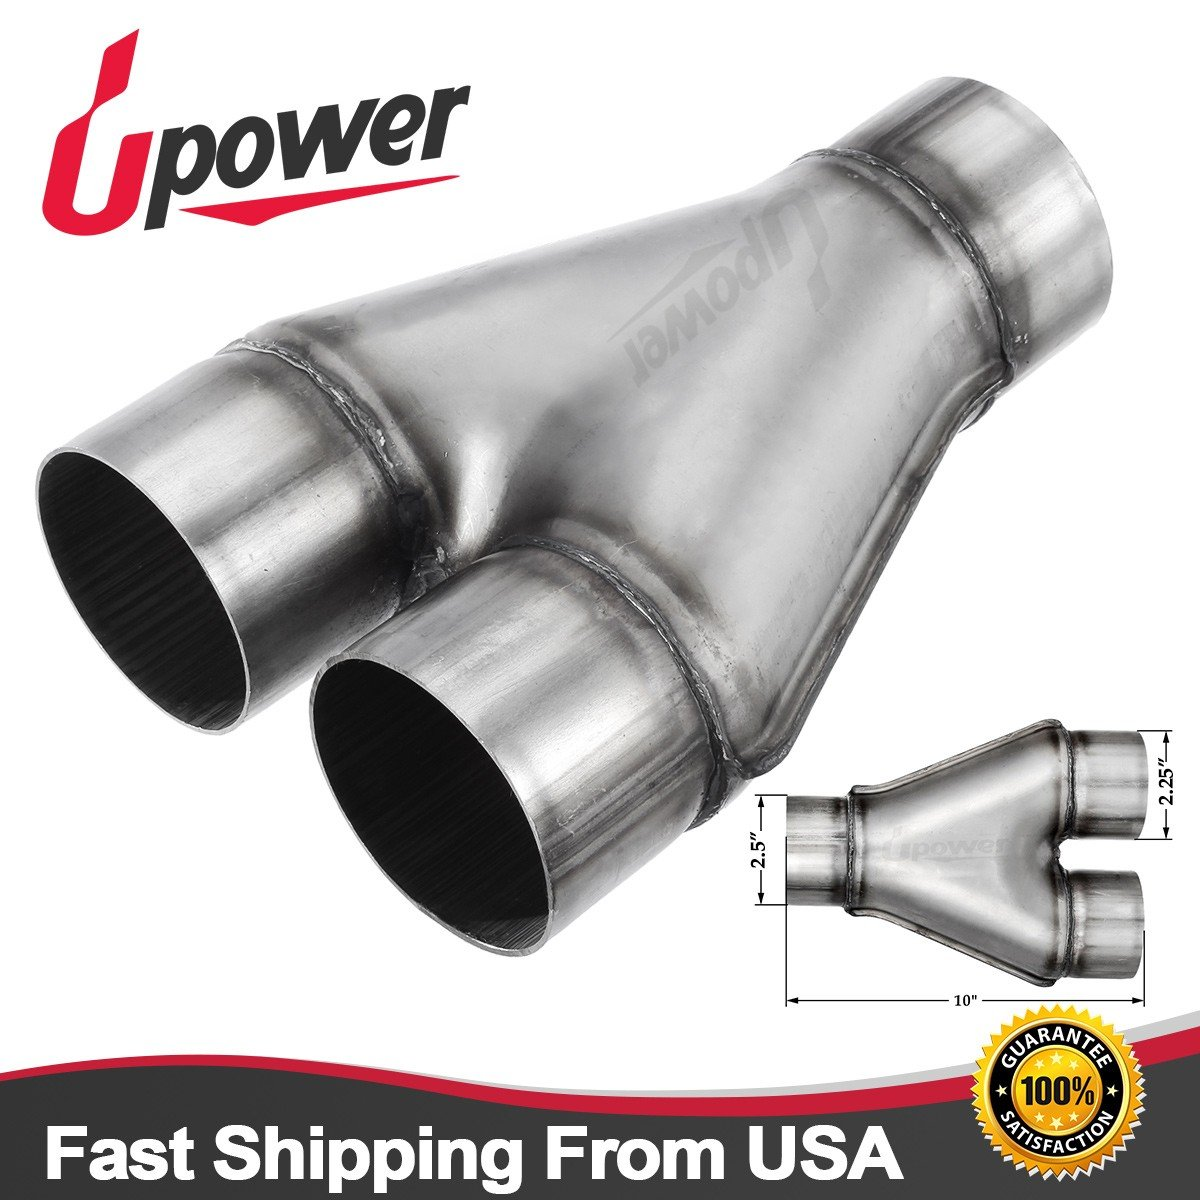 Upower Stamped Exhaust Ypipe Universal Stainless Steel Pipe w/Inlet 2.5' outlet 2.25'